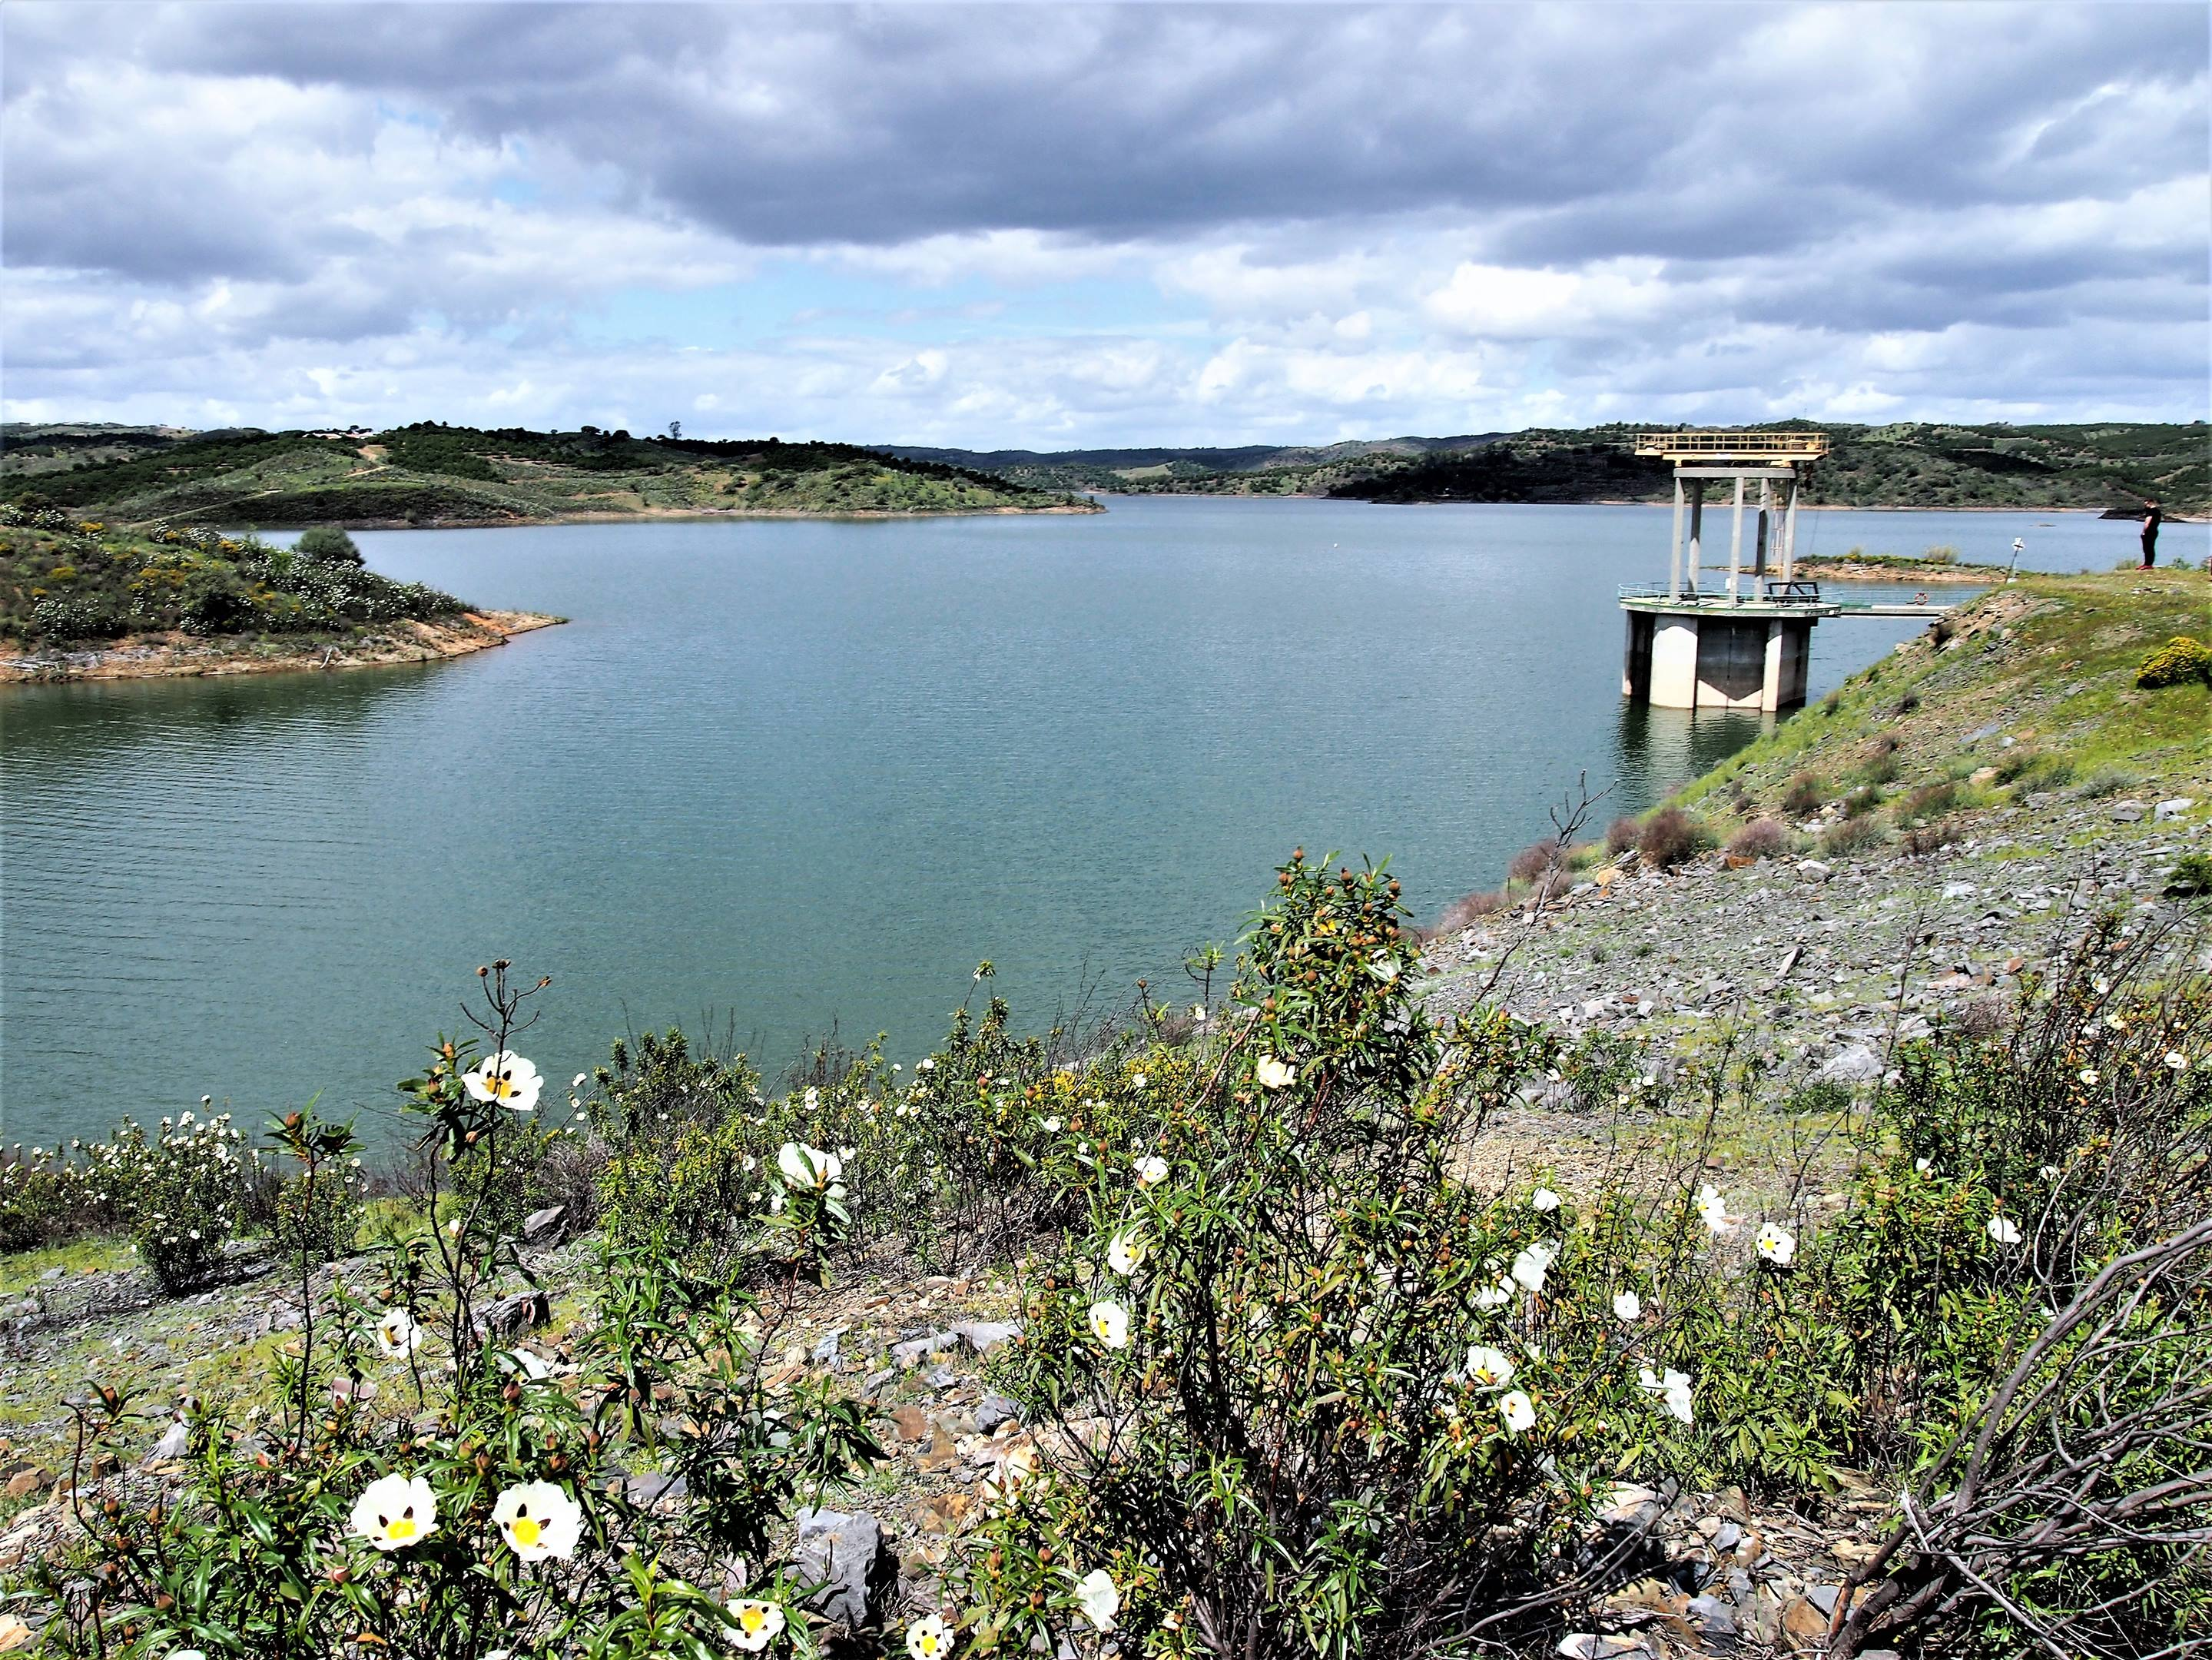 The barragem de Beliche or the Beliche dam, close to the small village of Beliche in Castro Marim